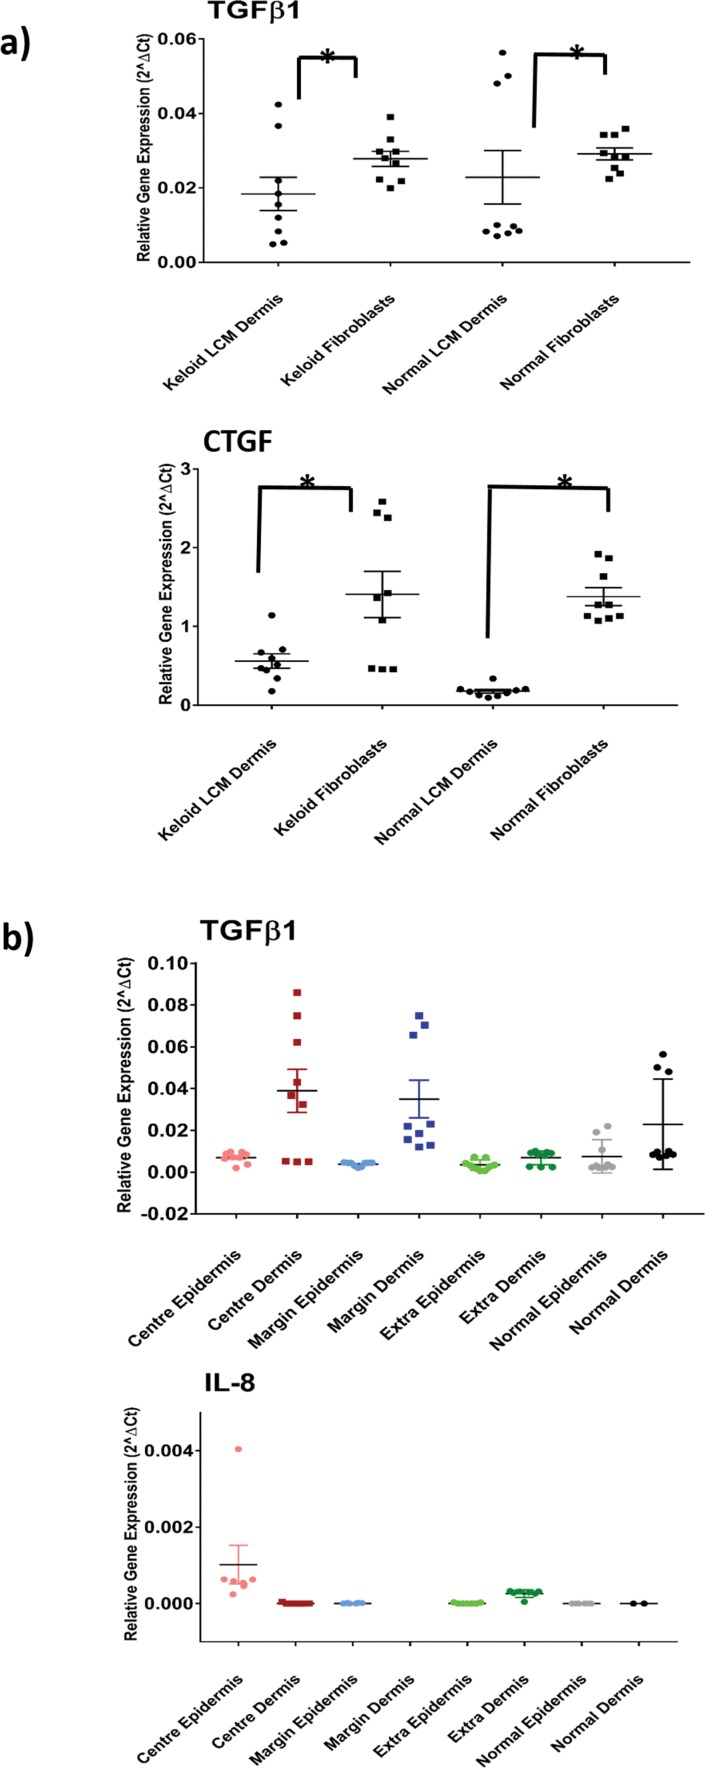 Site-specific contribution to differential gene expression in KD. (A) Comparison of gene expression between laser-captured dermal tissue ( in situ ) and fibroblasts for both keloid and normal skin. <t>qRT-PCR</t> graph for both TGFβ1 and CTGF (additional examples found in S2A Fig ). All data are mean ± SEM for at least three independent experiments. B) qRT-PCR for TGFβ1 and interleukin-8 ( IL-8 ) showing relative contributions of different keloid sites to overall expression and comparison with normal skin (additional genes available in S2B Fig ). Data are mean ± SEM where * p-value